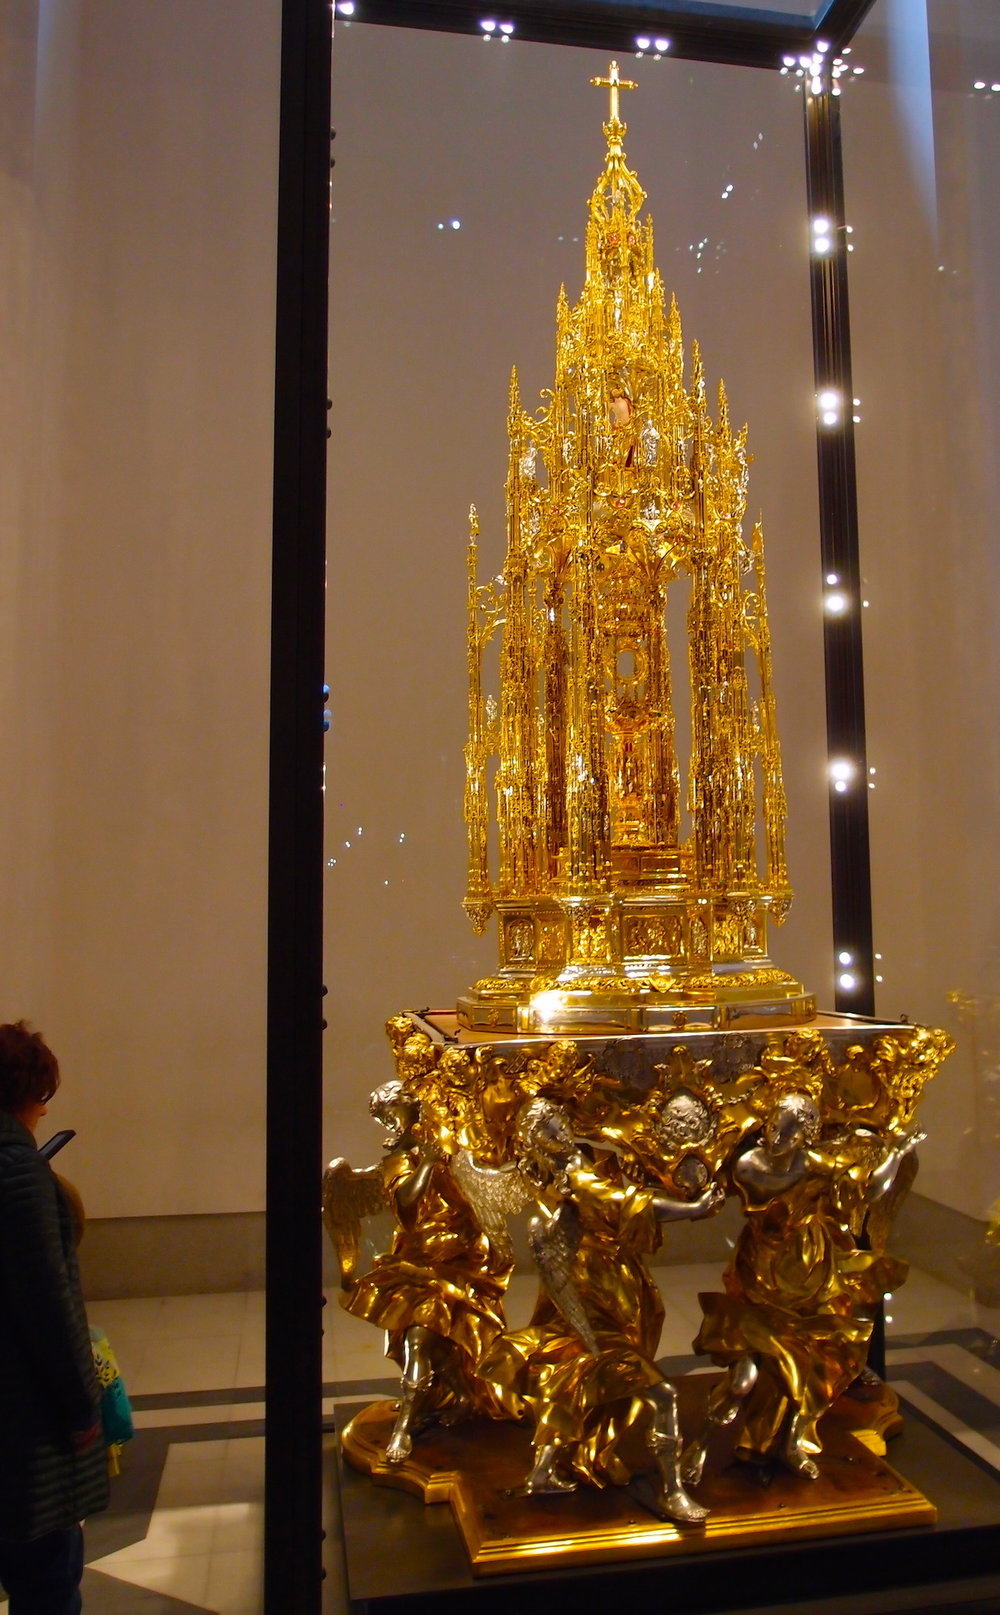 The Great Monstrance of the Cathedral of Toledo